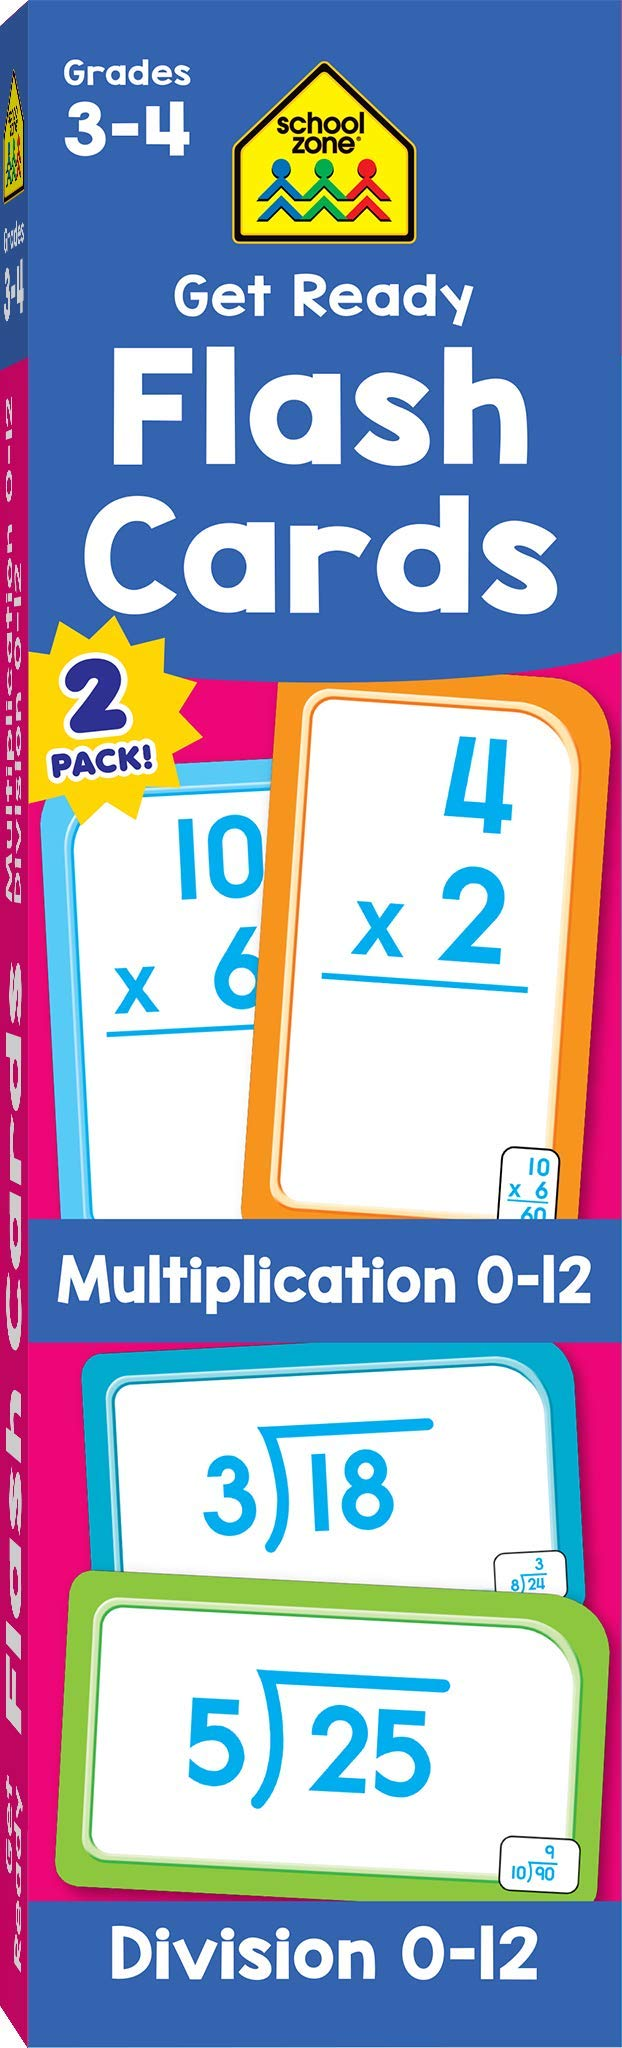 School Zone Multiplication Division Elementary product image